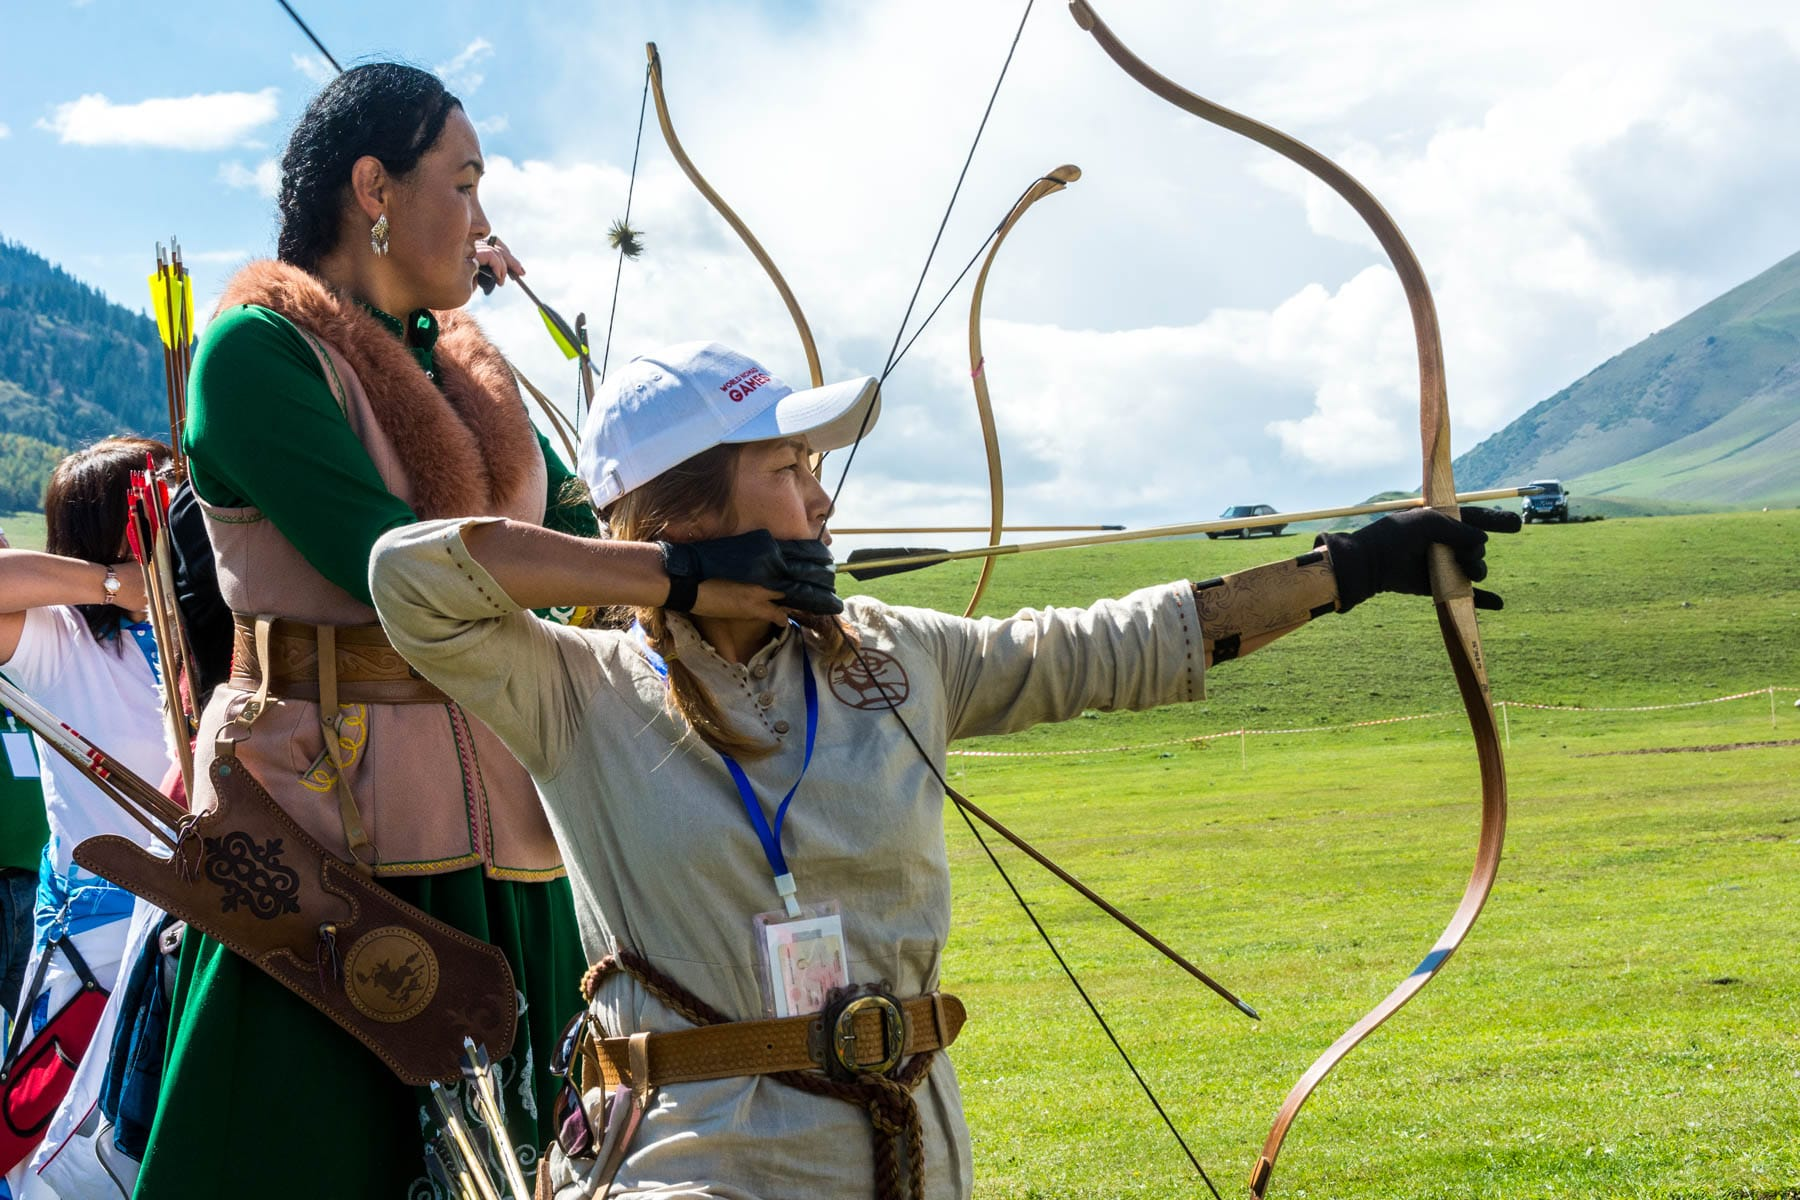 Women doing archery at the World Nomad Games